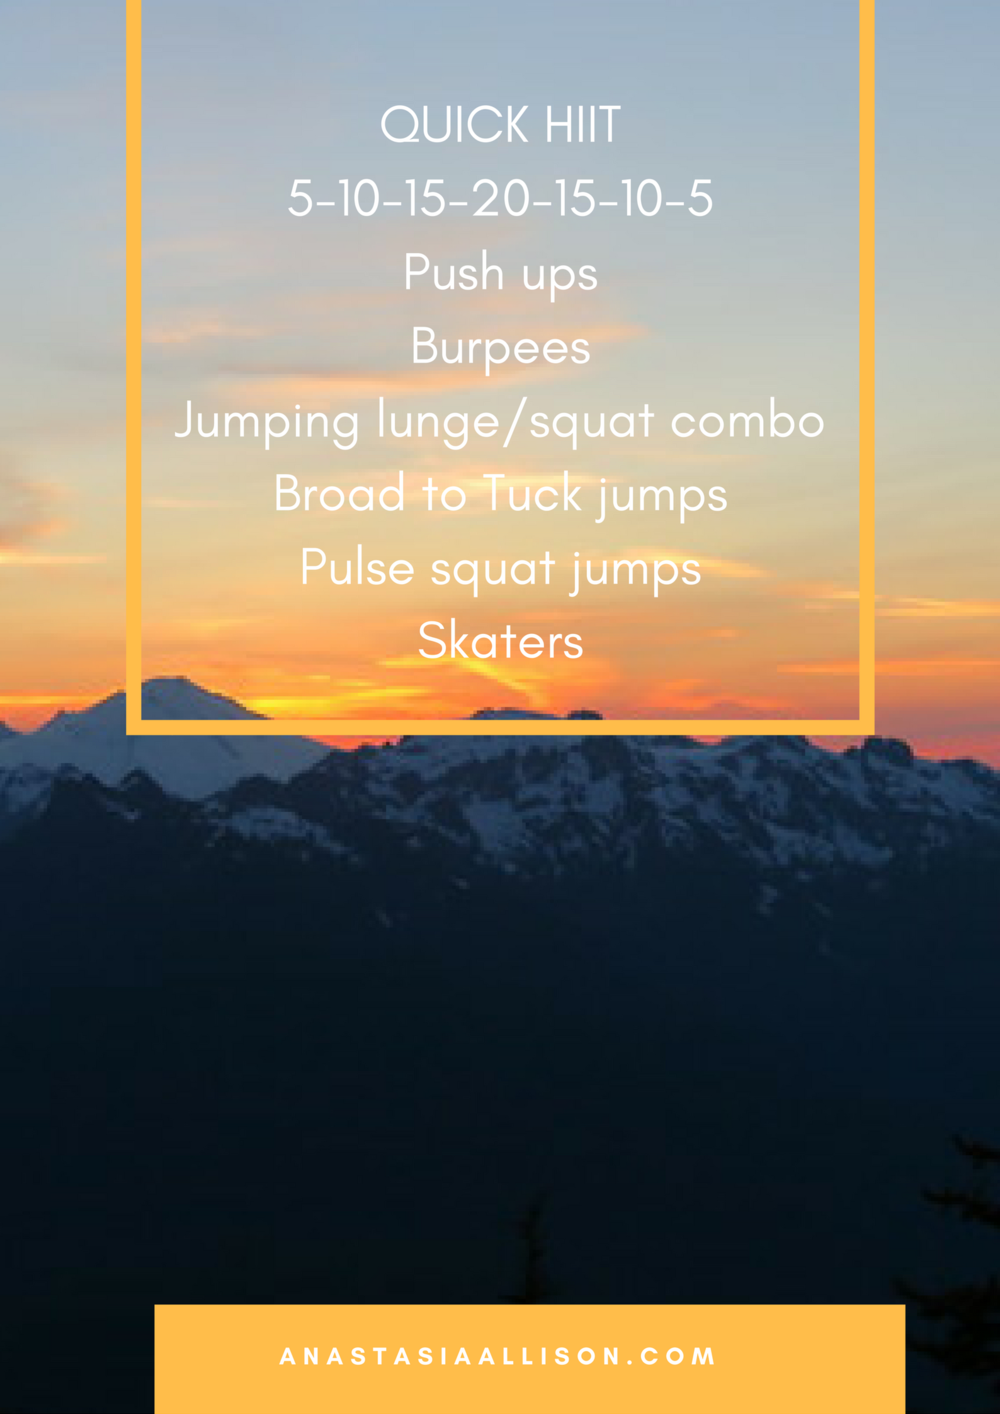 QUICK HIIT5-10-15-20-15-10-5.png